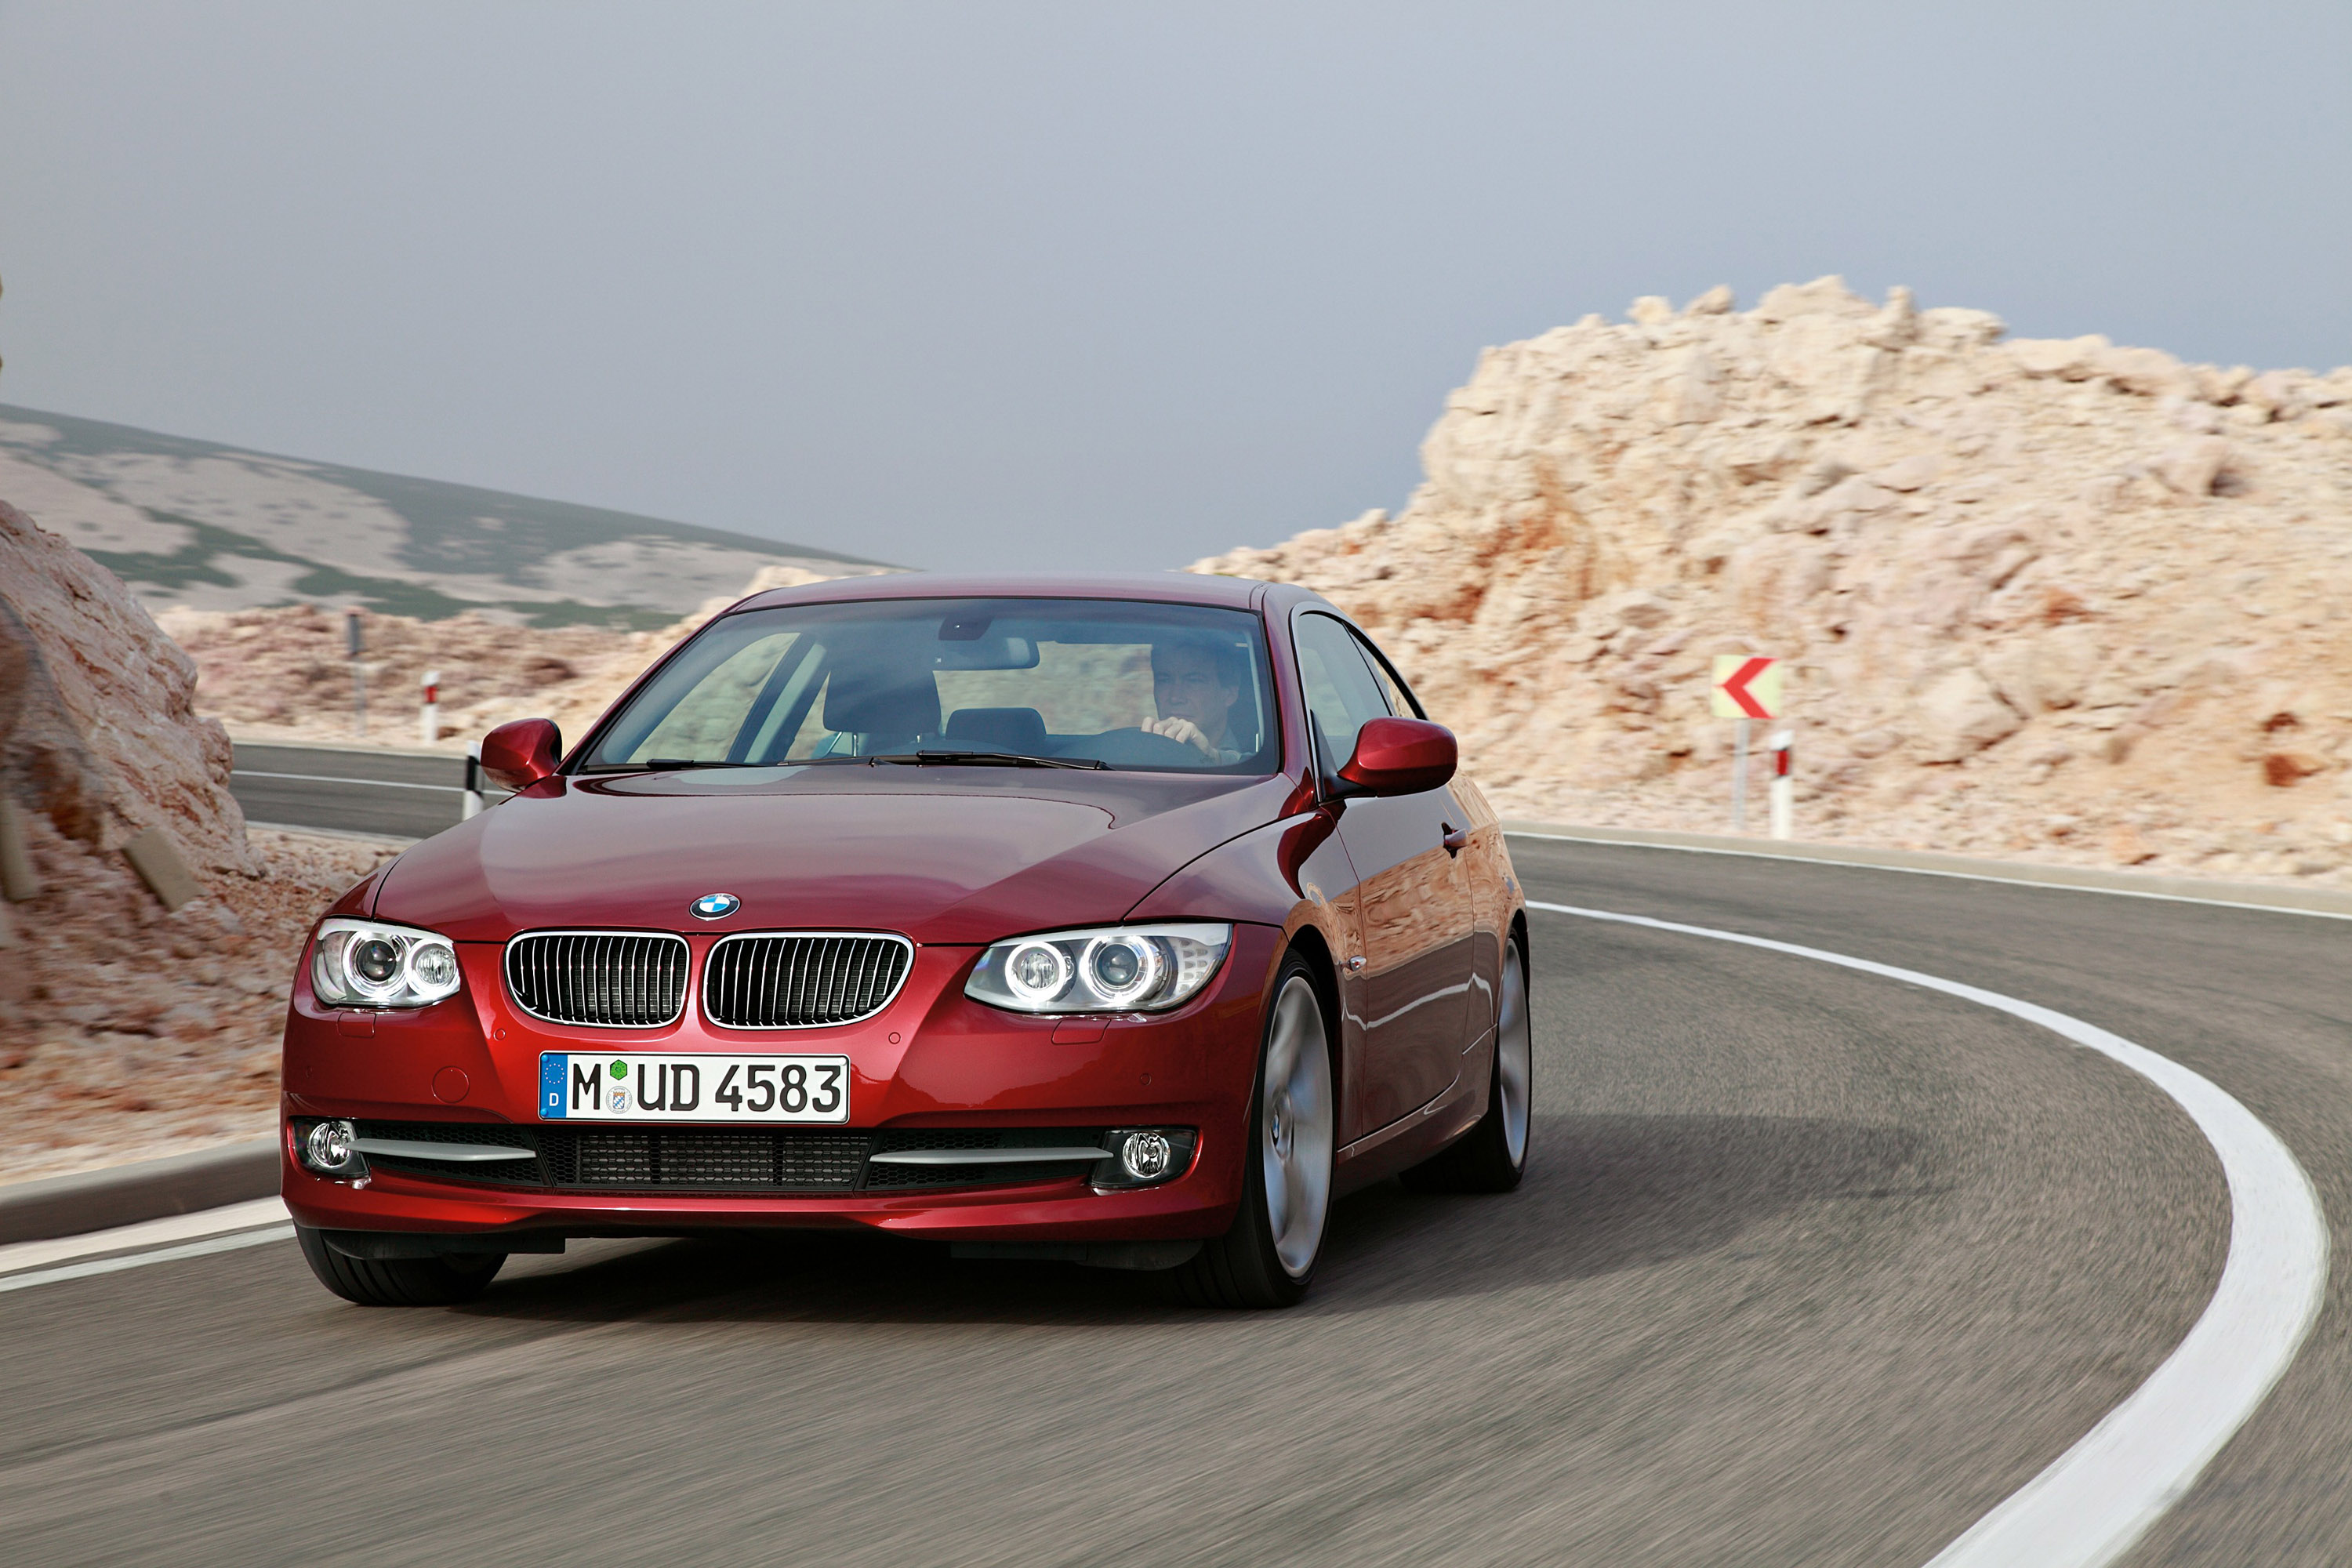 2011 BMW 3 Series Coupe - Picture 30367